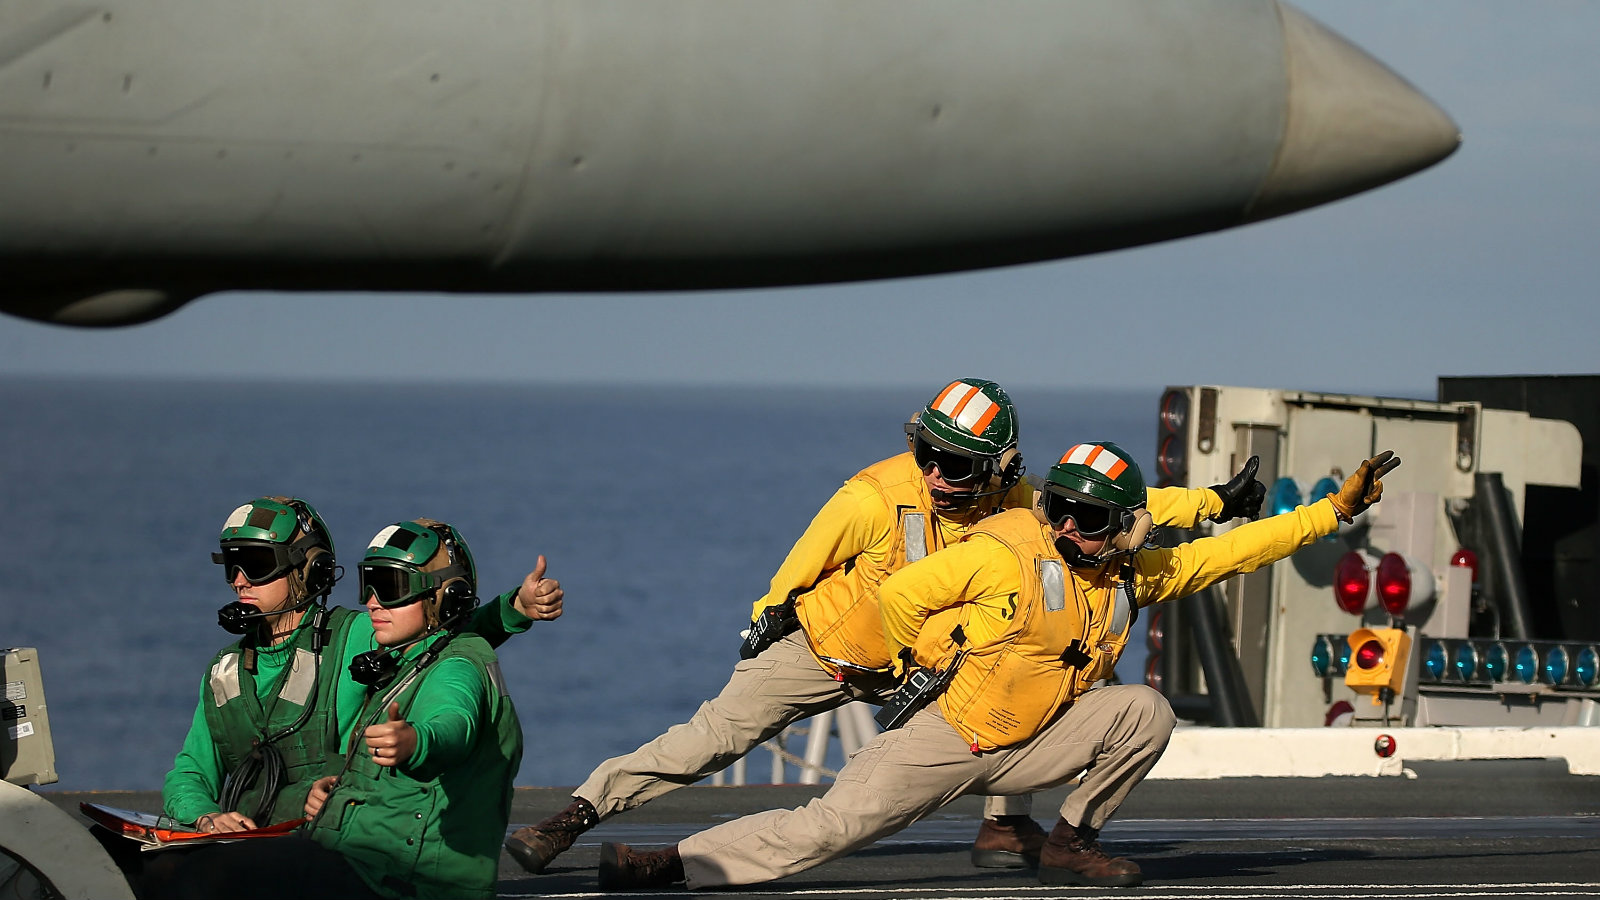 A flight deck crew prepares to launch a F18 Super Hornet from the deck of the USS Eisenhower in the Atlantic Ocean off the coast of Virginia. US secretary Ash Carter visited the carrier with India's defence minister Manohar Parrikar to see a demonstration of the US Navy aircraft carrier's flight operations.